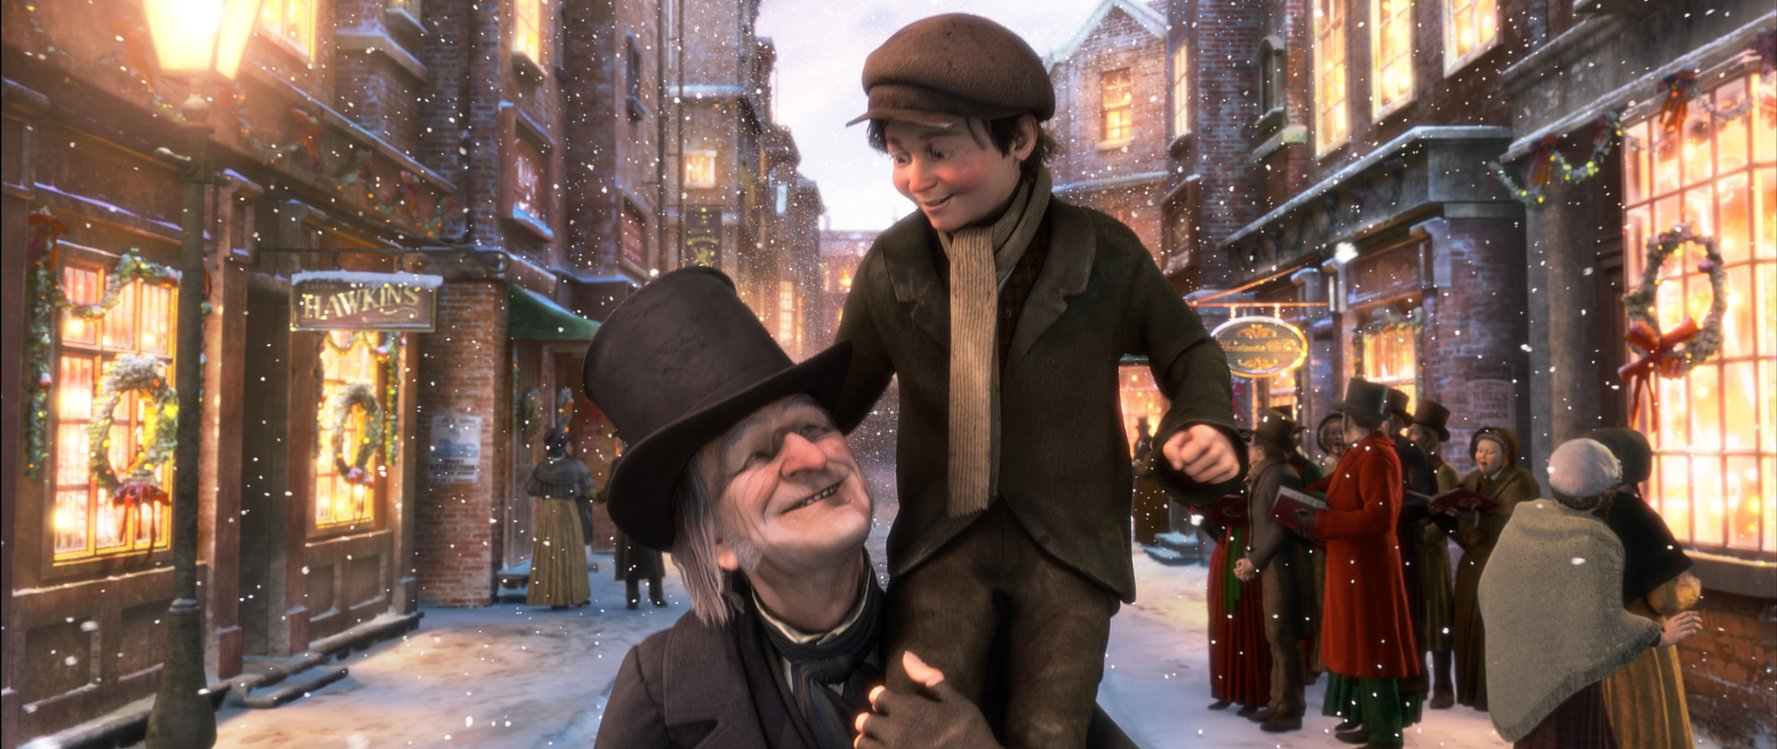 A+Christmas+Carol-animation- Jim Carrey-movie+review-Deborah+Reed-DebaDoTell-4